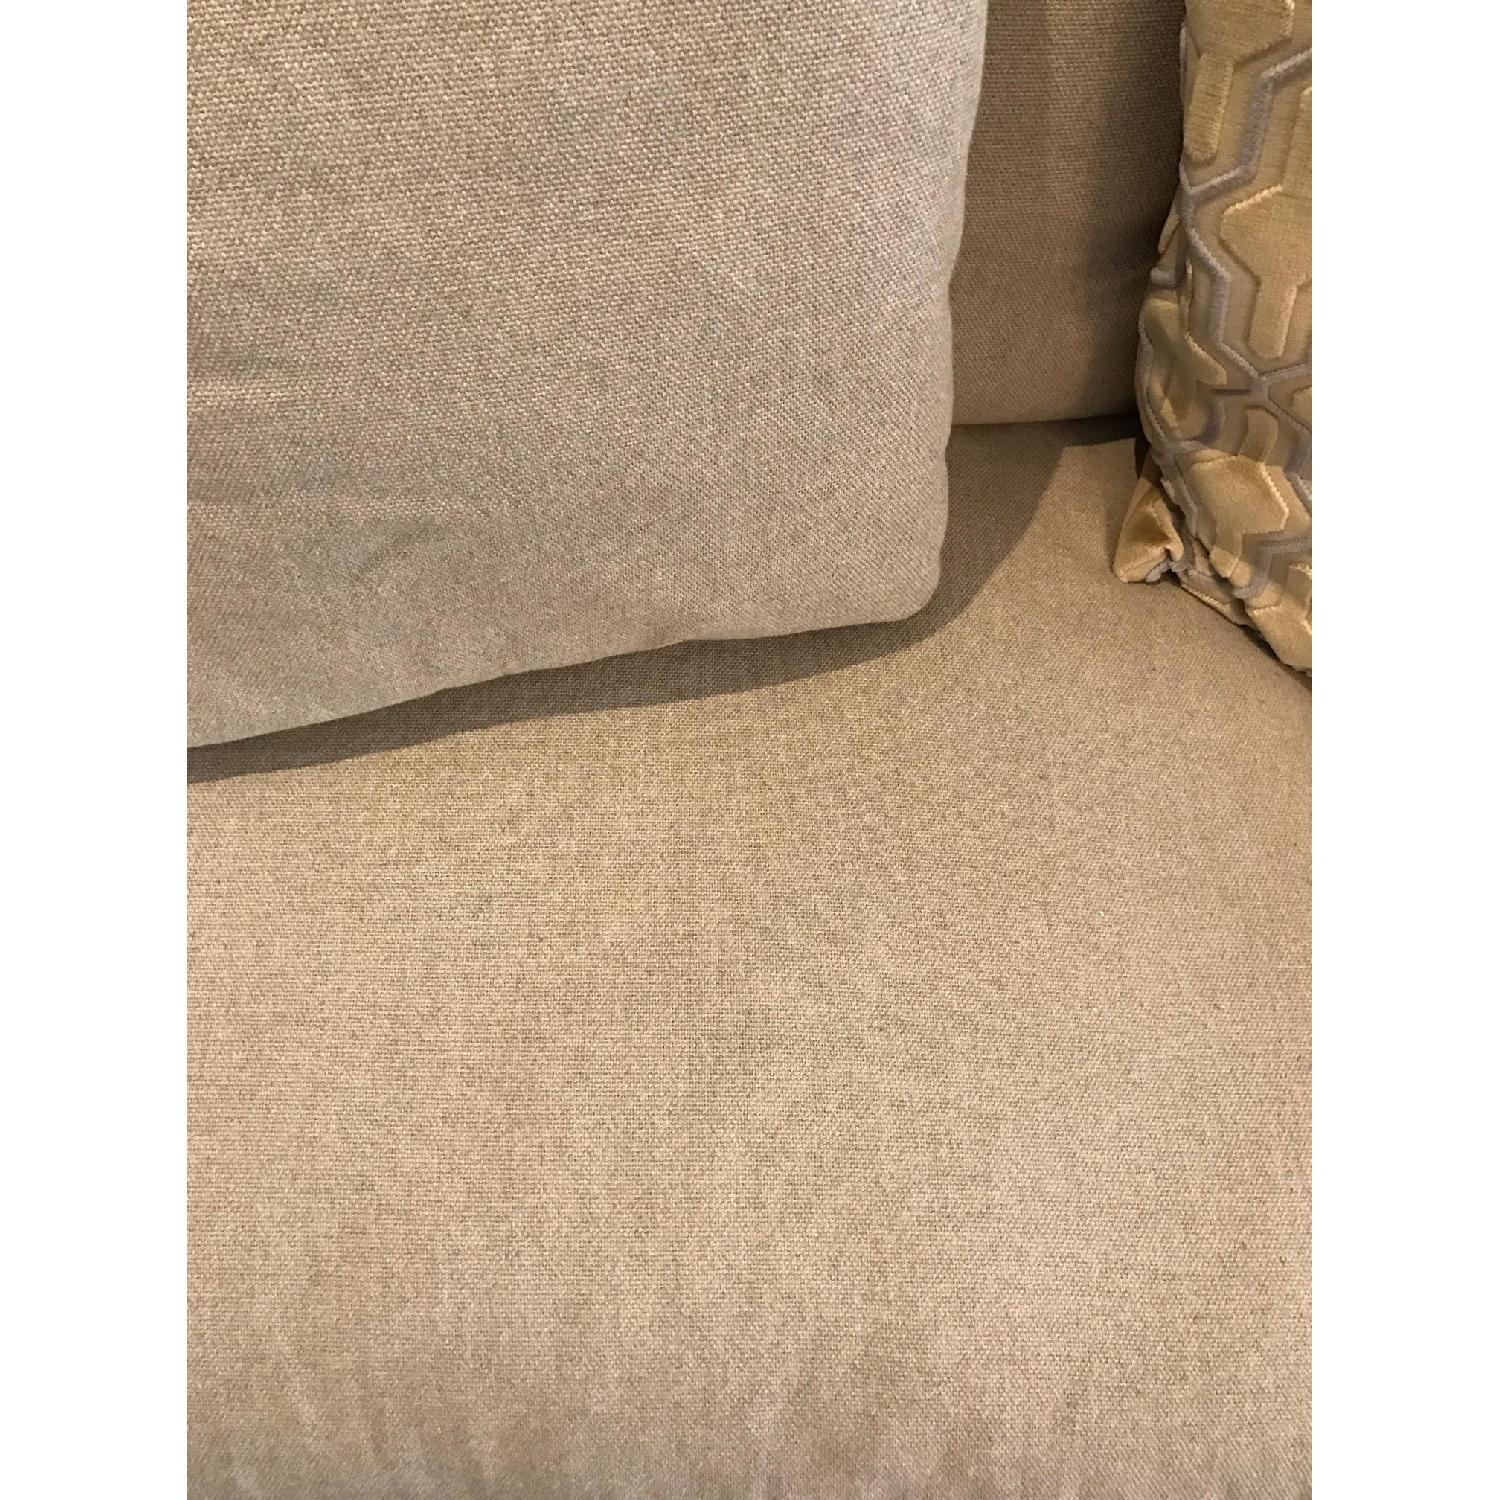 Room & Board Metro Sectional Sofa - image-5